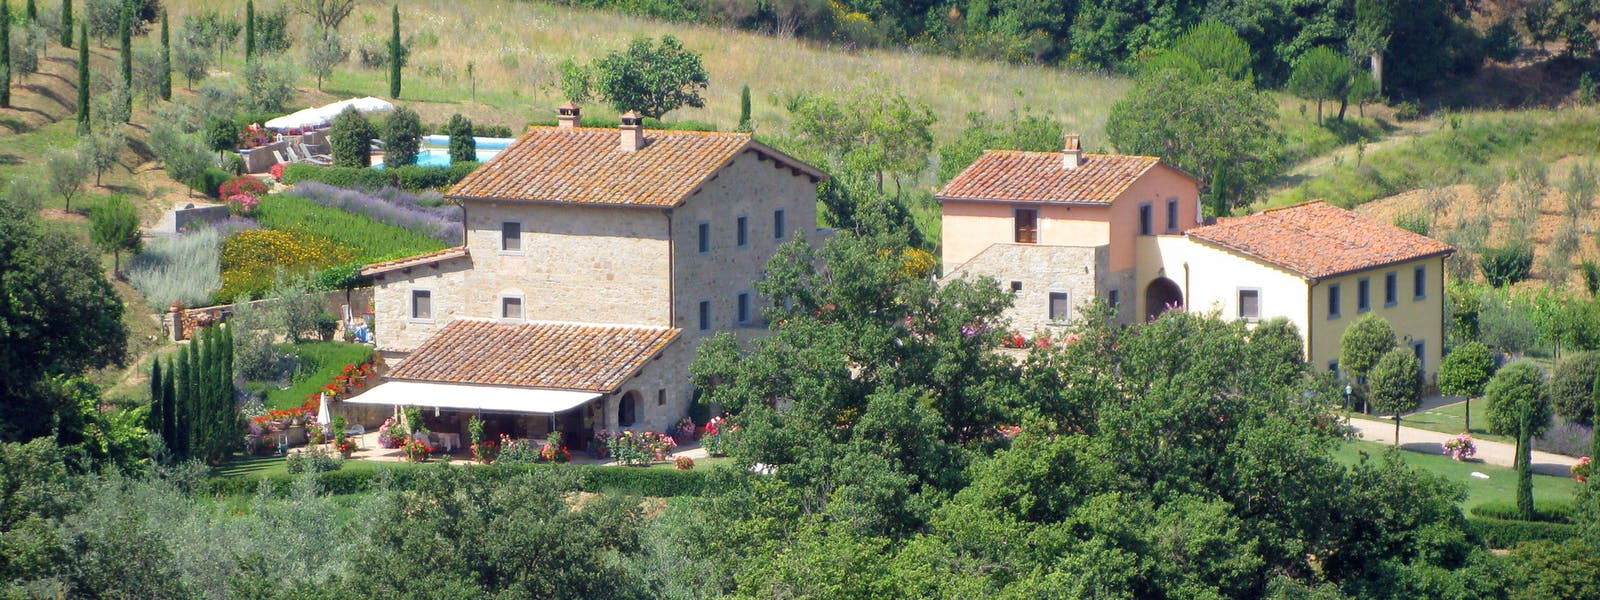 Casa Portagioia Tuscany bed and breakfast , views